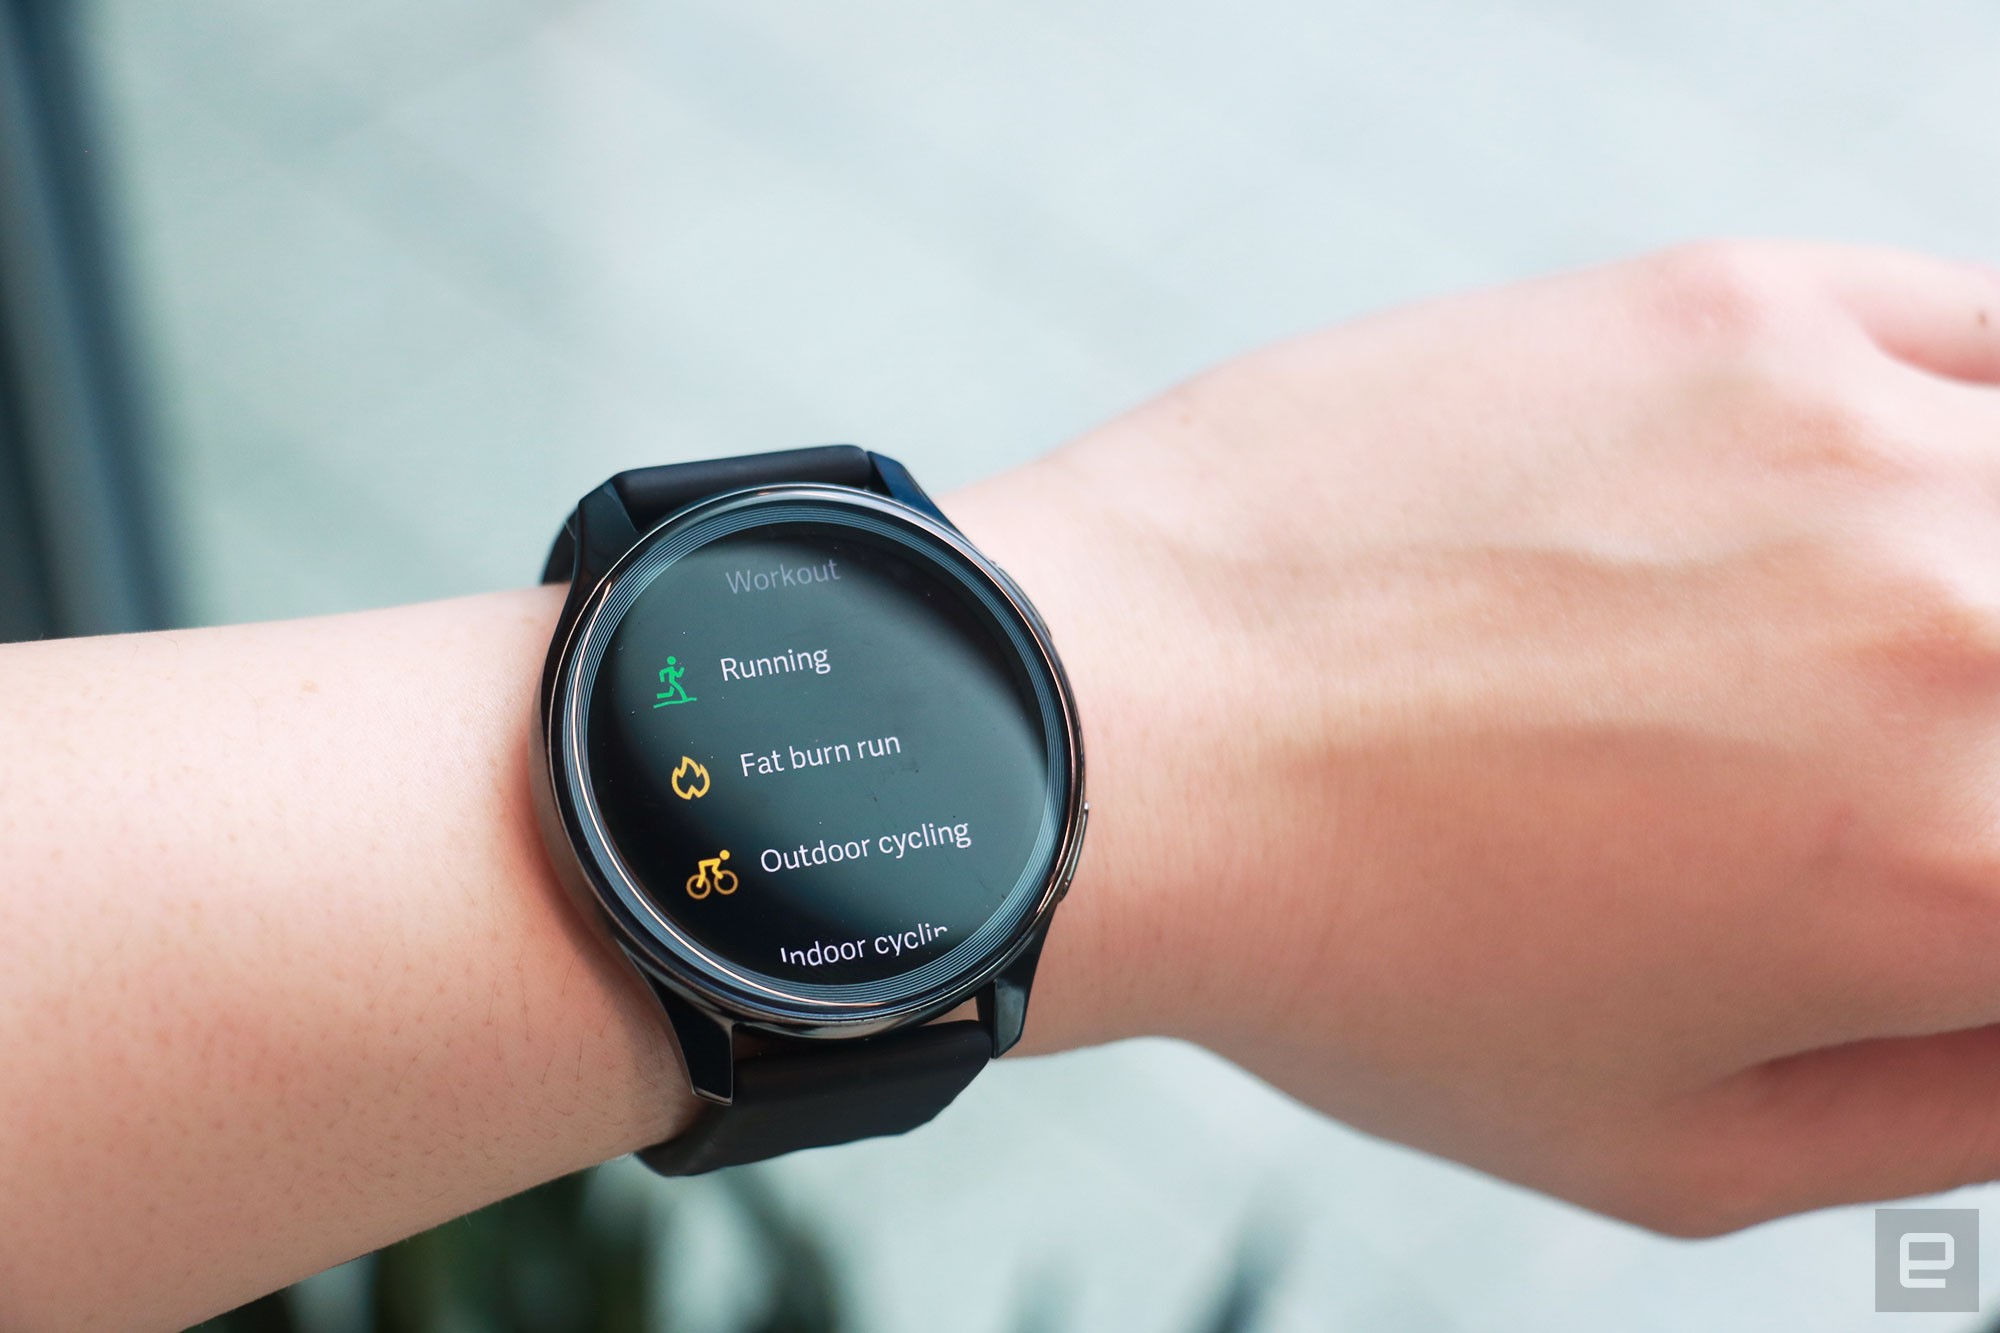 <p>OnePlus Watch review photos. OnePlus Watch on a wrist showing a list of workouts including Running, Fat Burn Run, Outdoor cycling and Indoor cycling.</p>